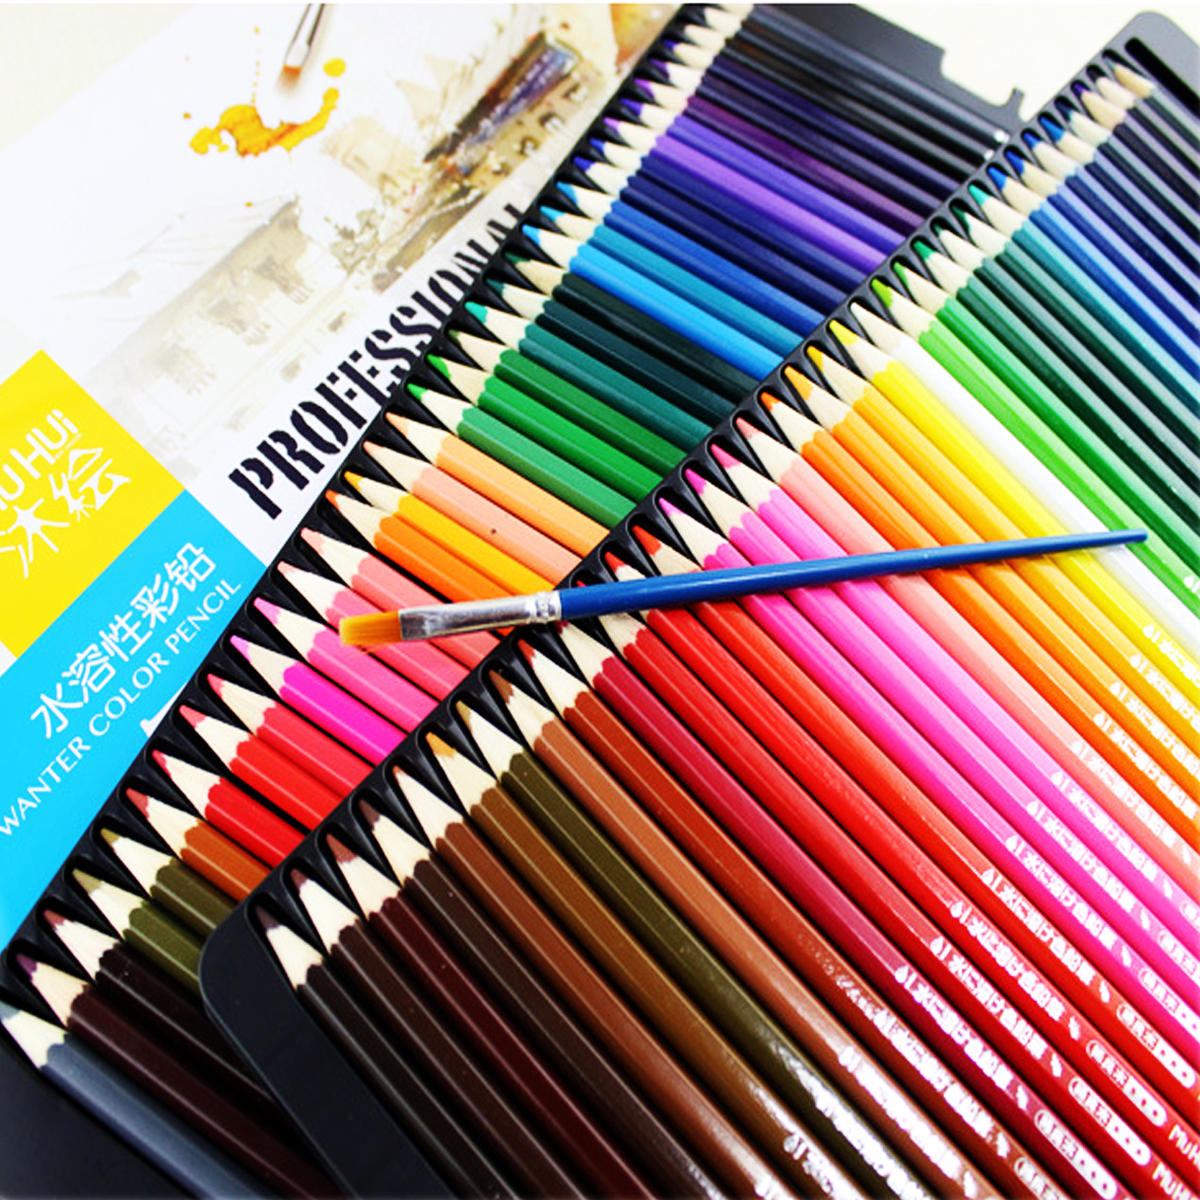 72 Lápices de colores Dibujo de arte Lápices de núcleo blando Plomo Agua Soluble Color Pen Set